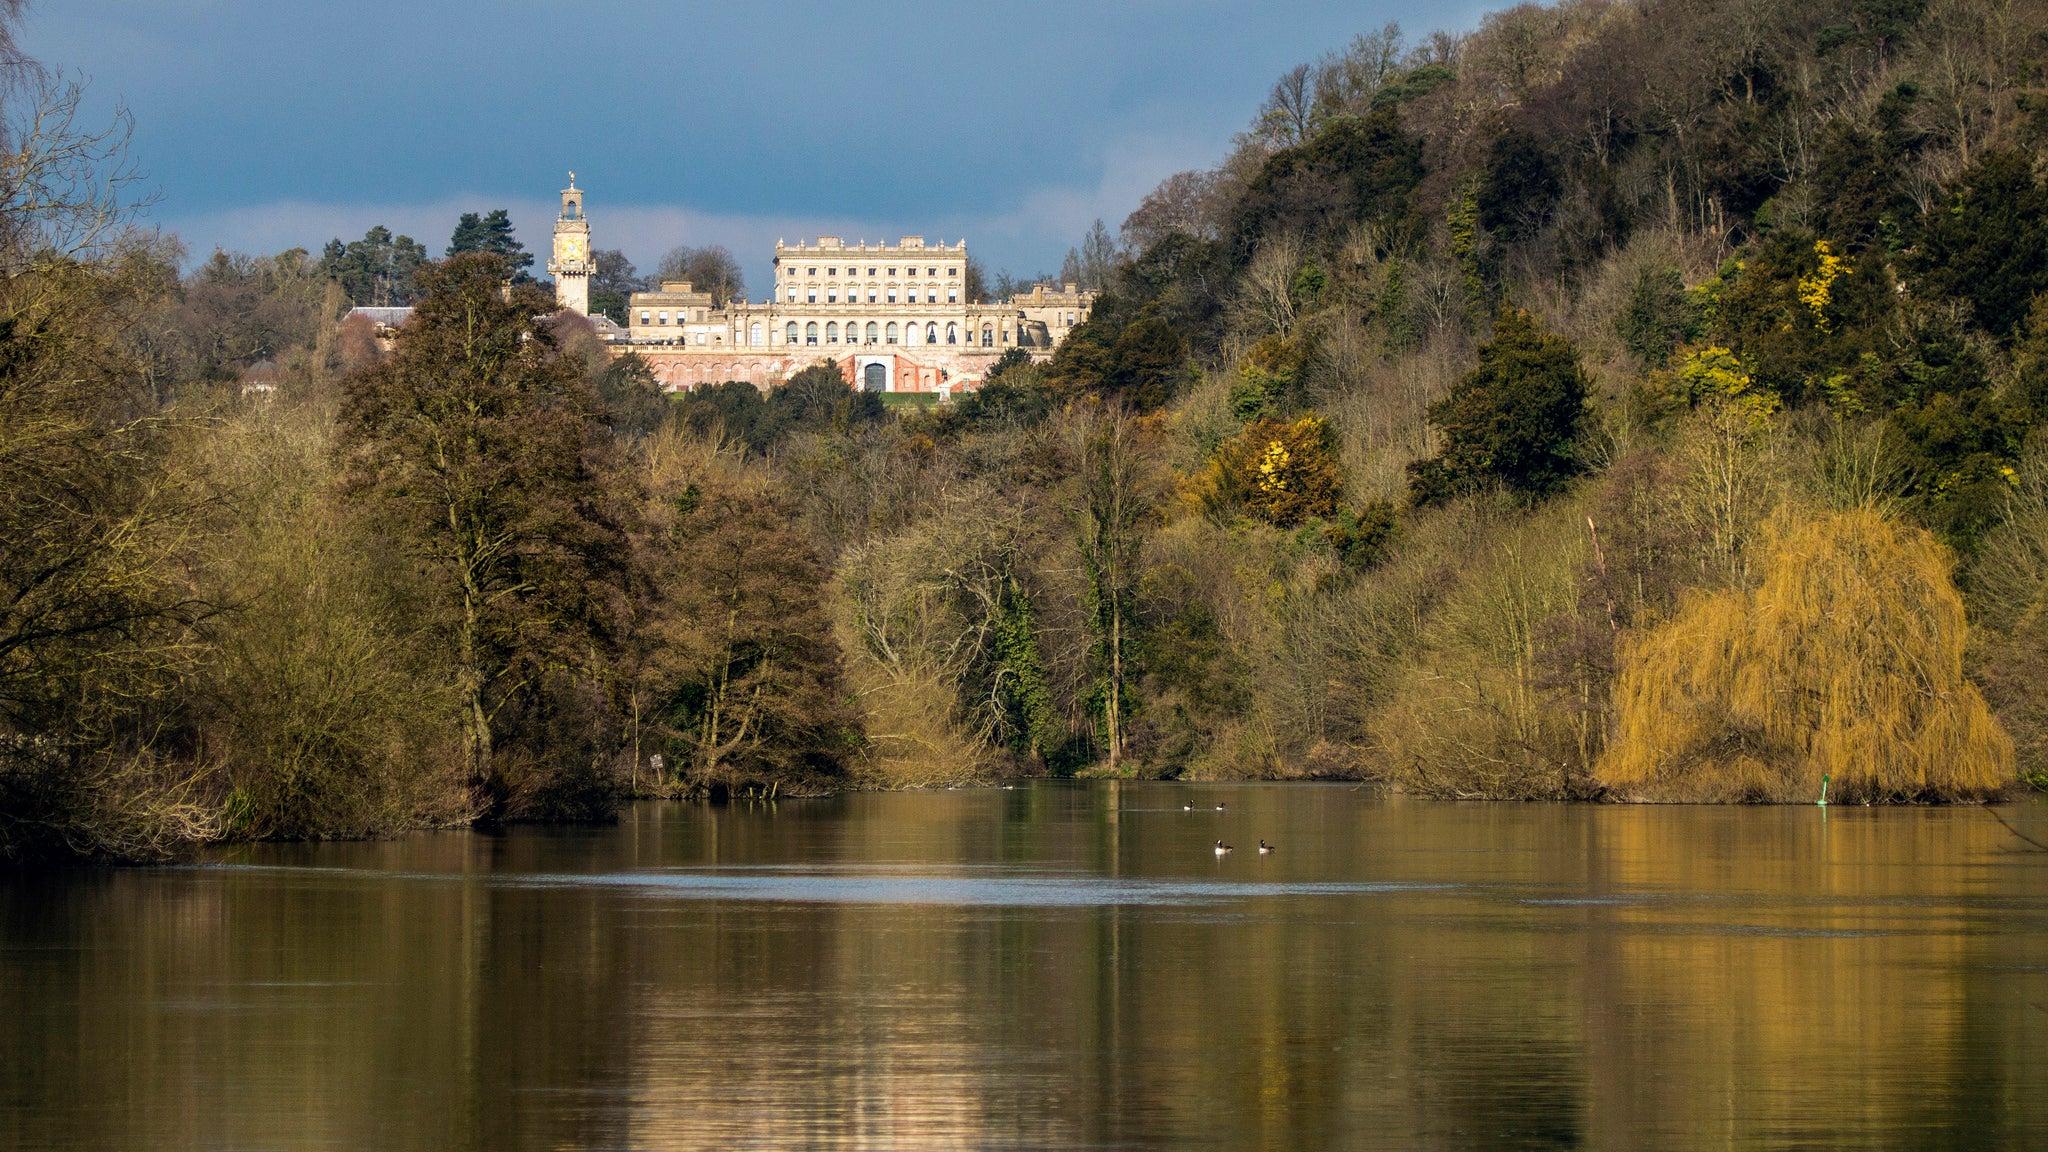 Take a woodland walk to see the many views of Cliveden House